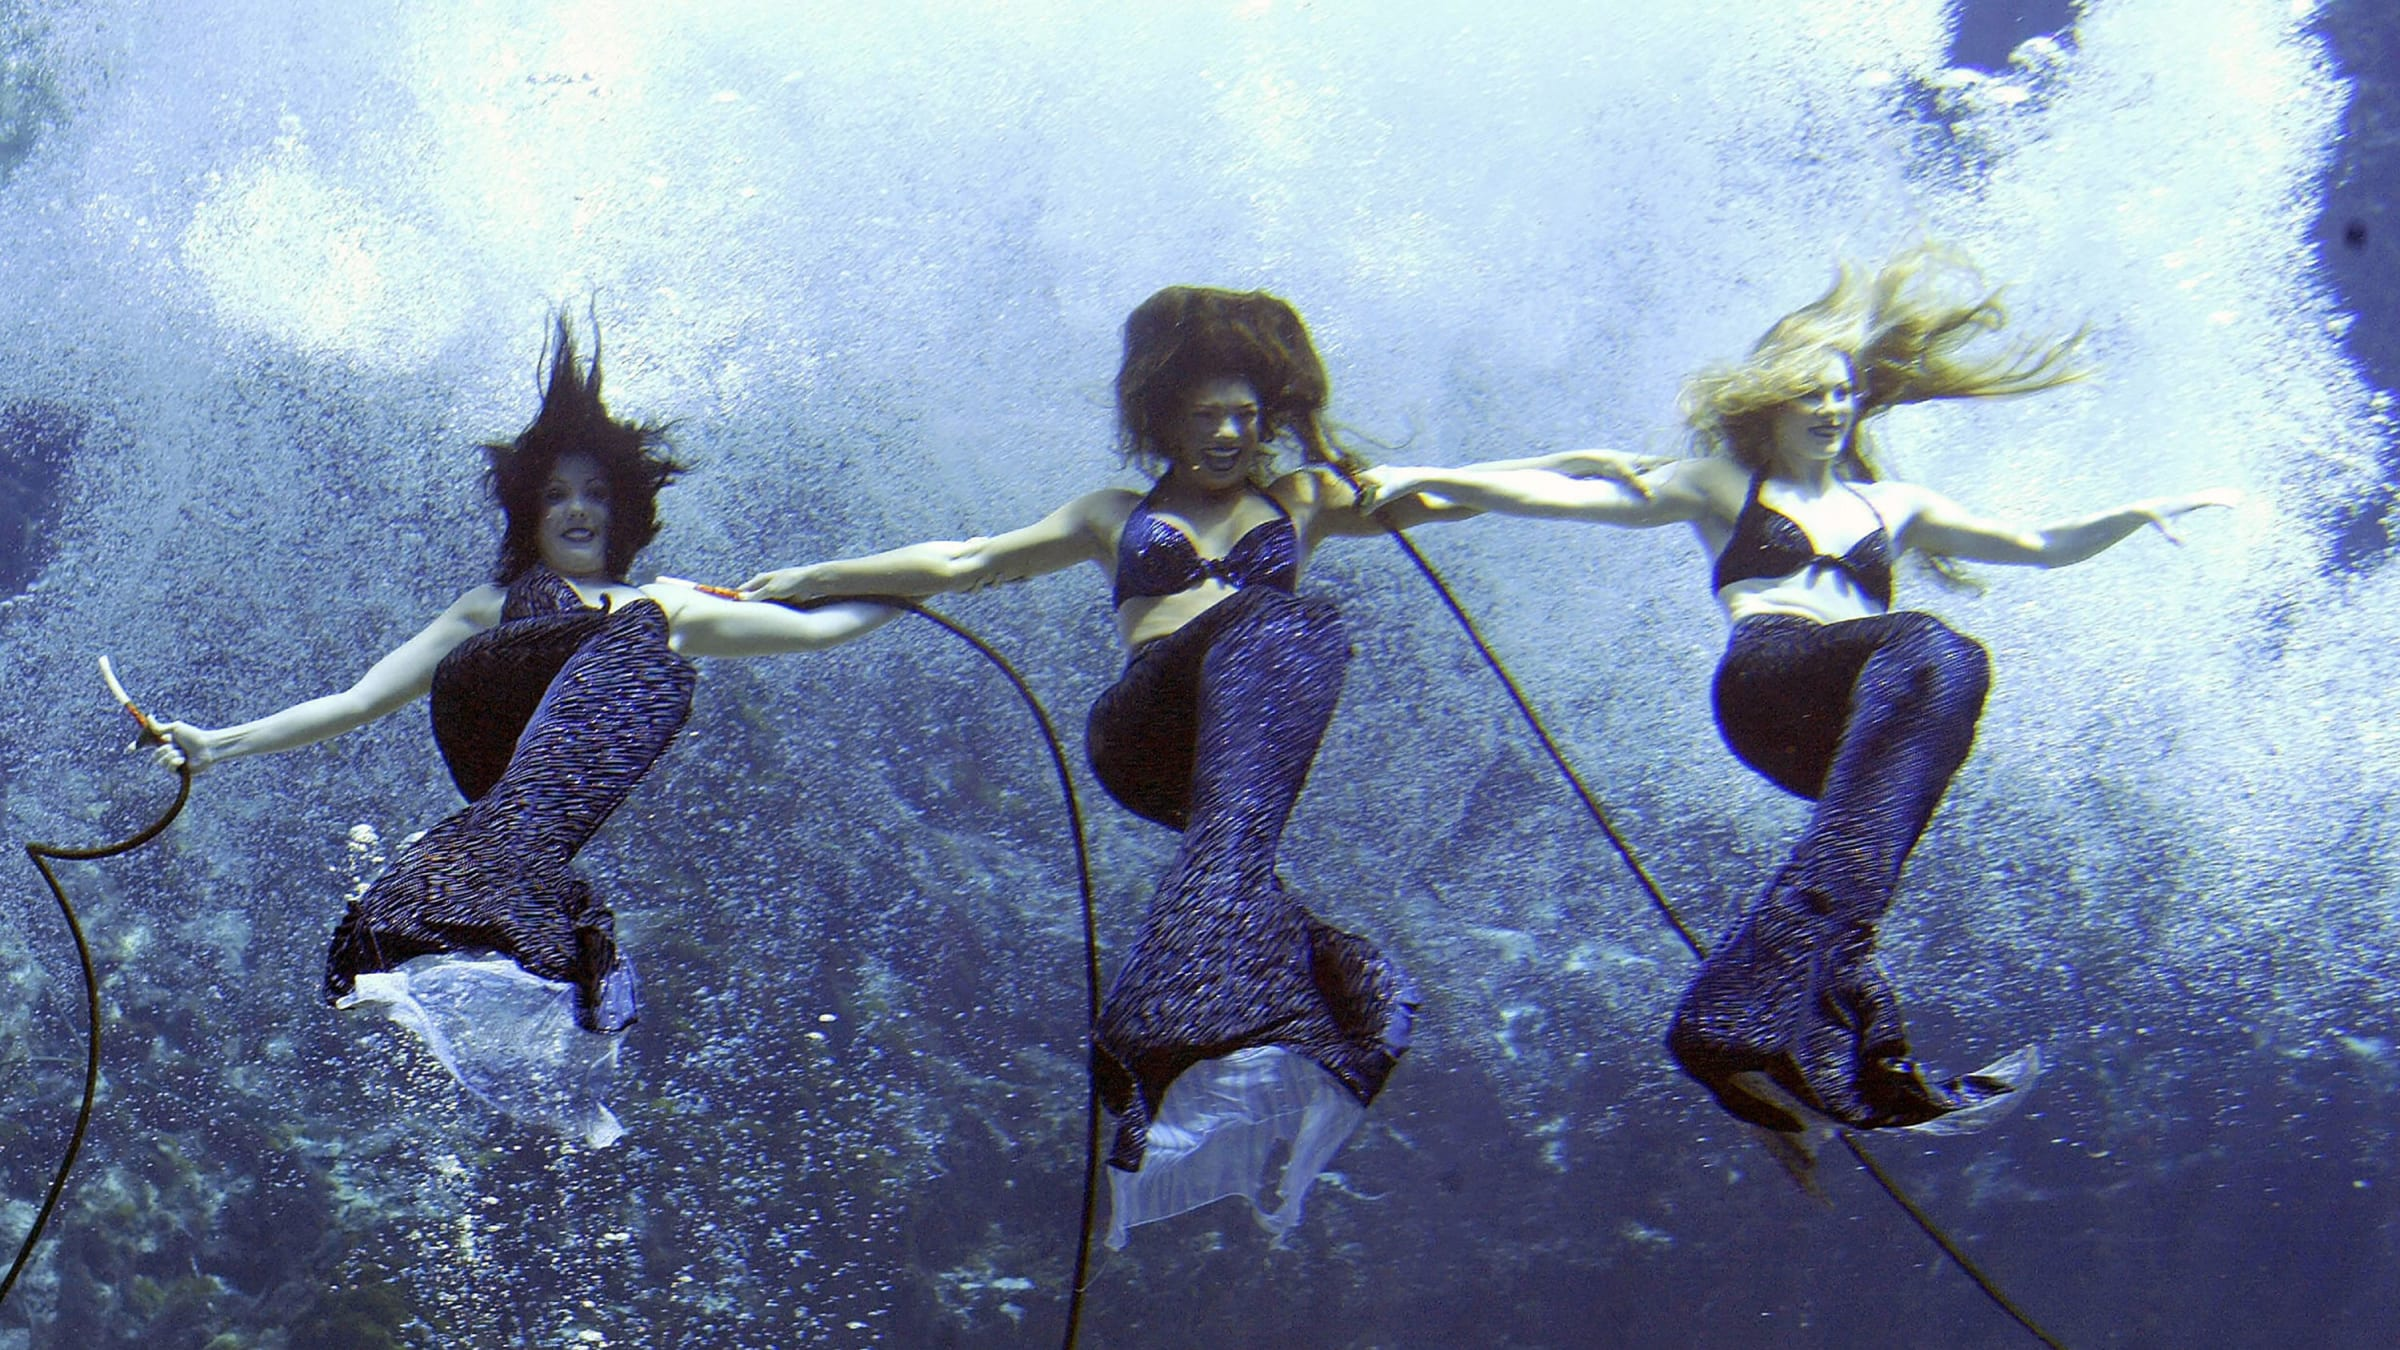 Weeki Wachee River: The Turquoise River That Brings You Right to Old Florida